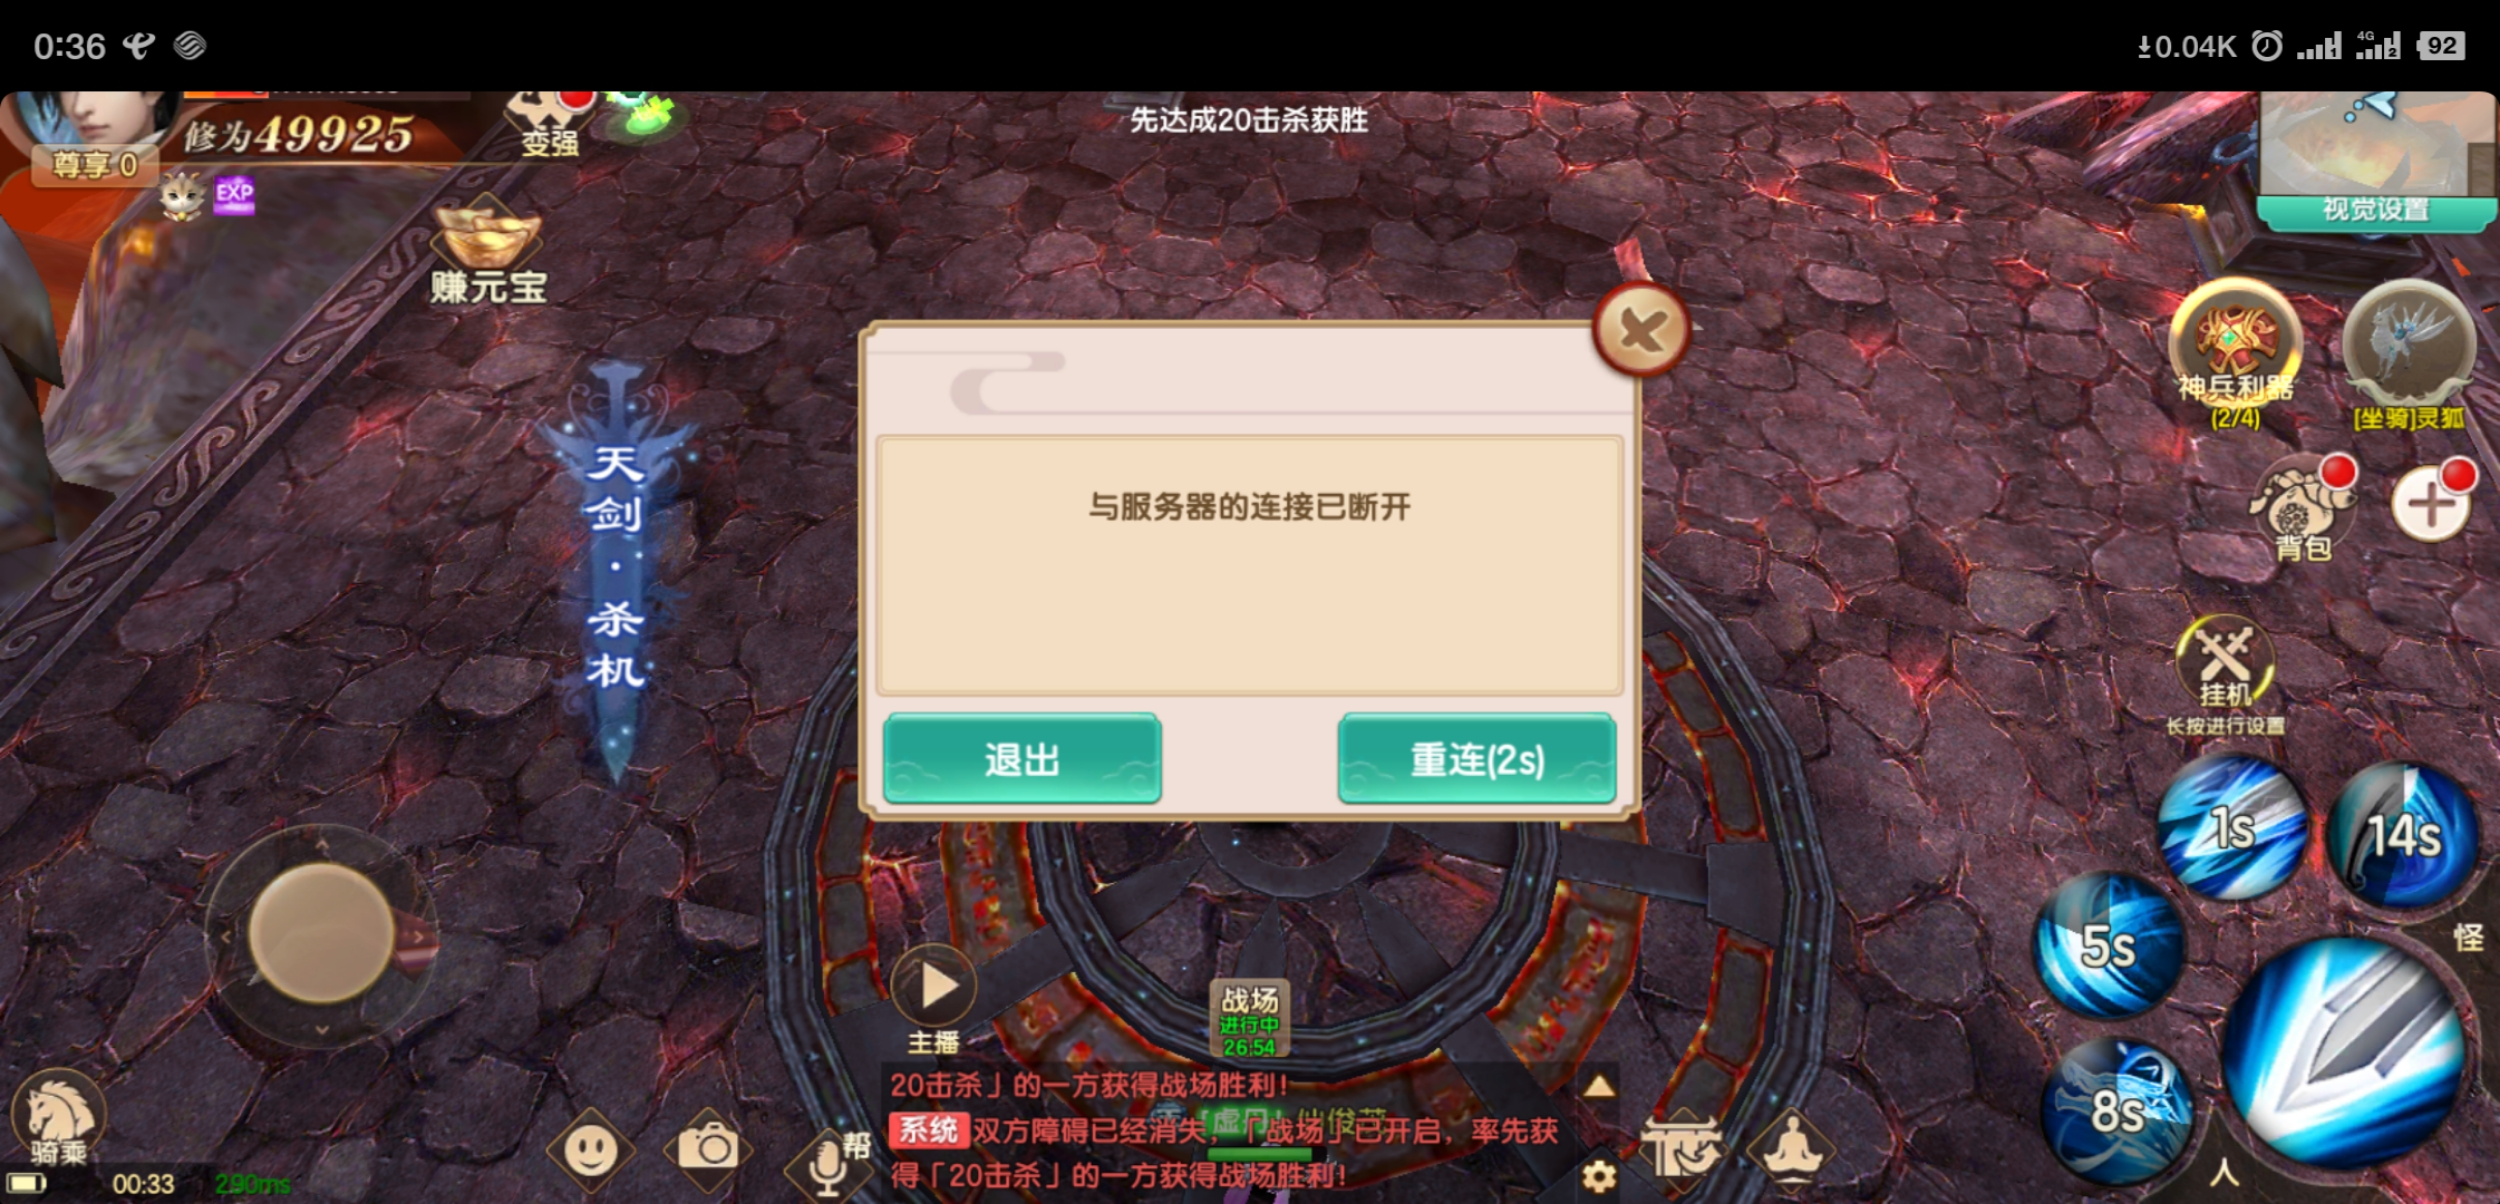 Screenshot_2019-08-14-00-36-06-036_??.png